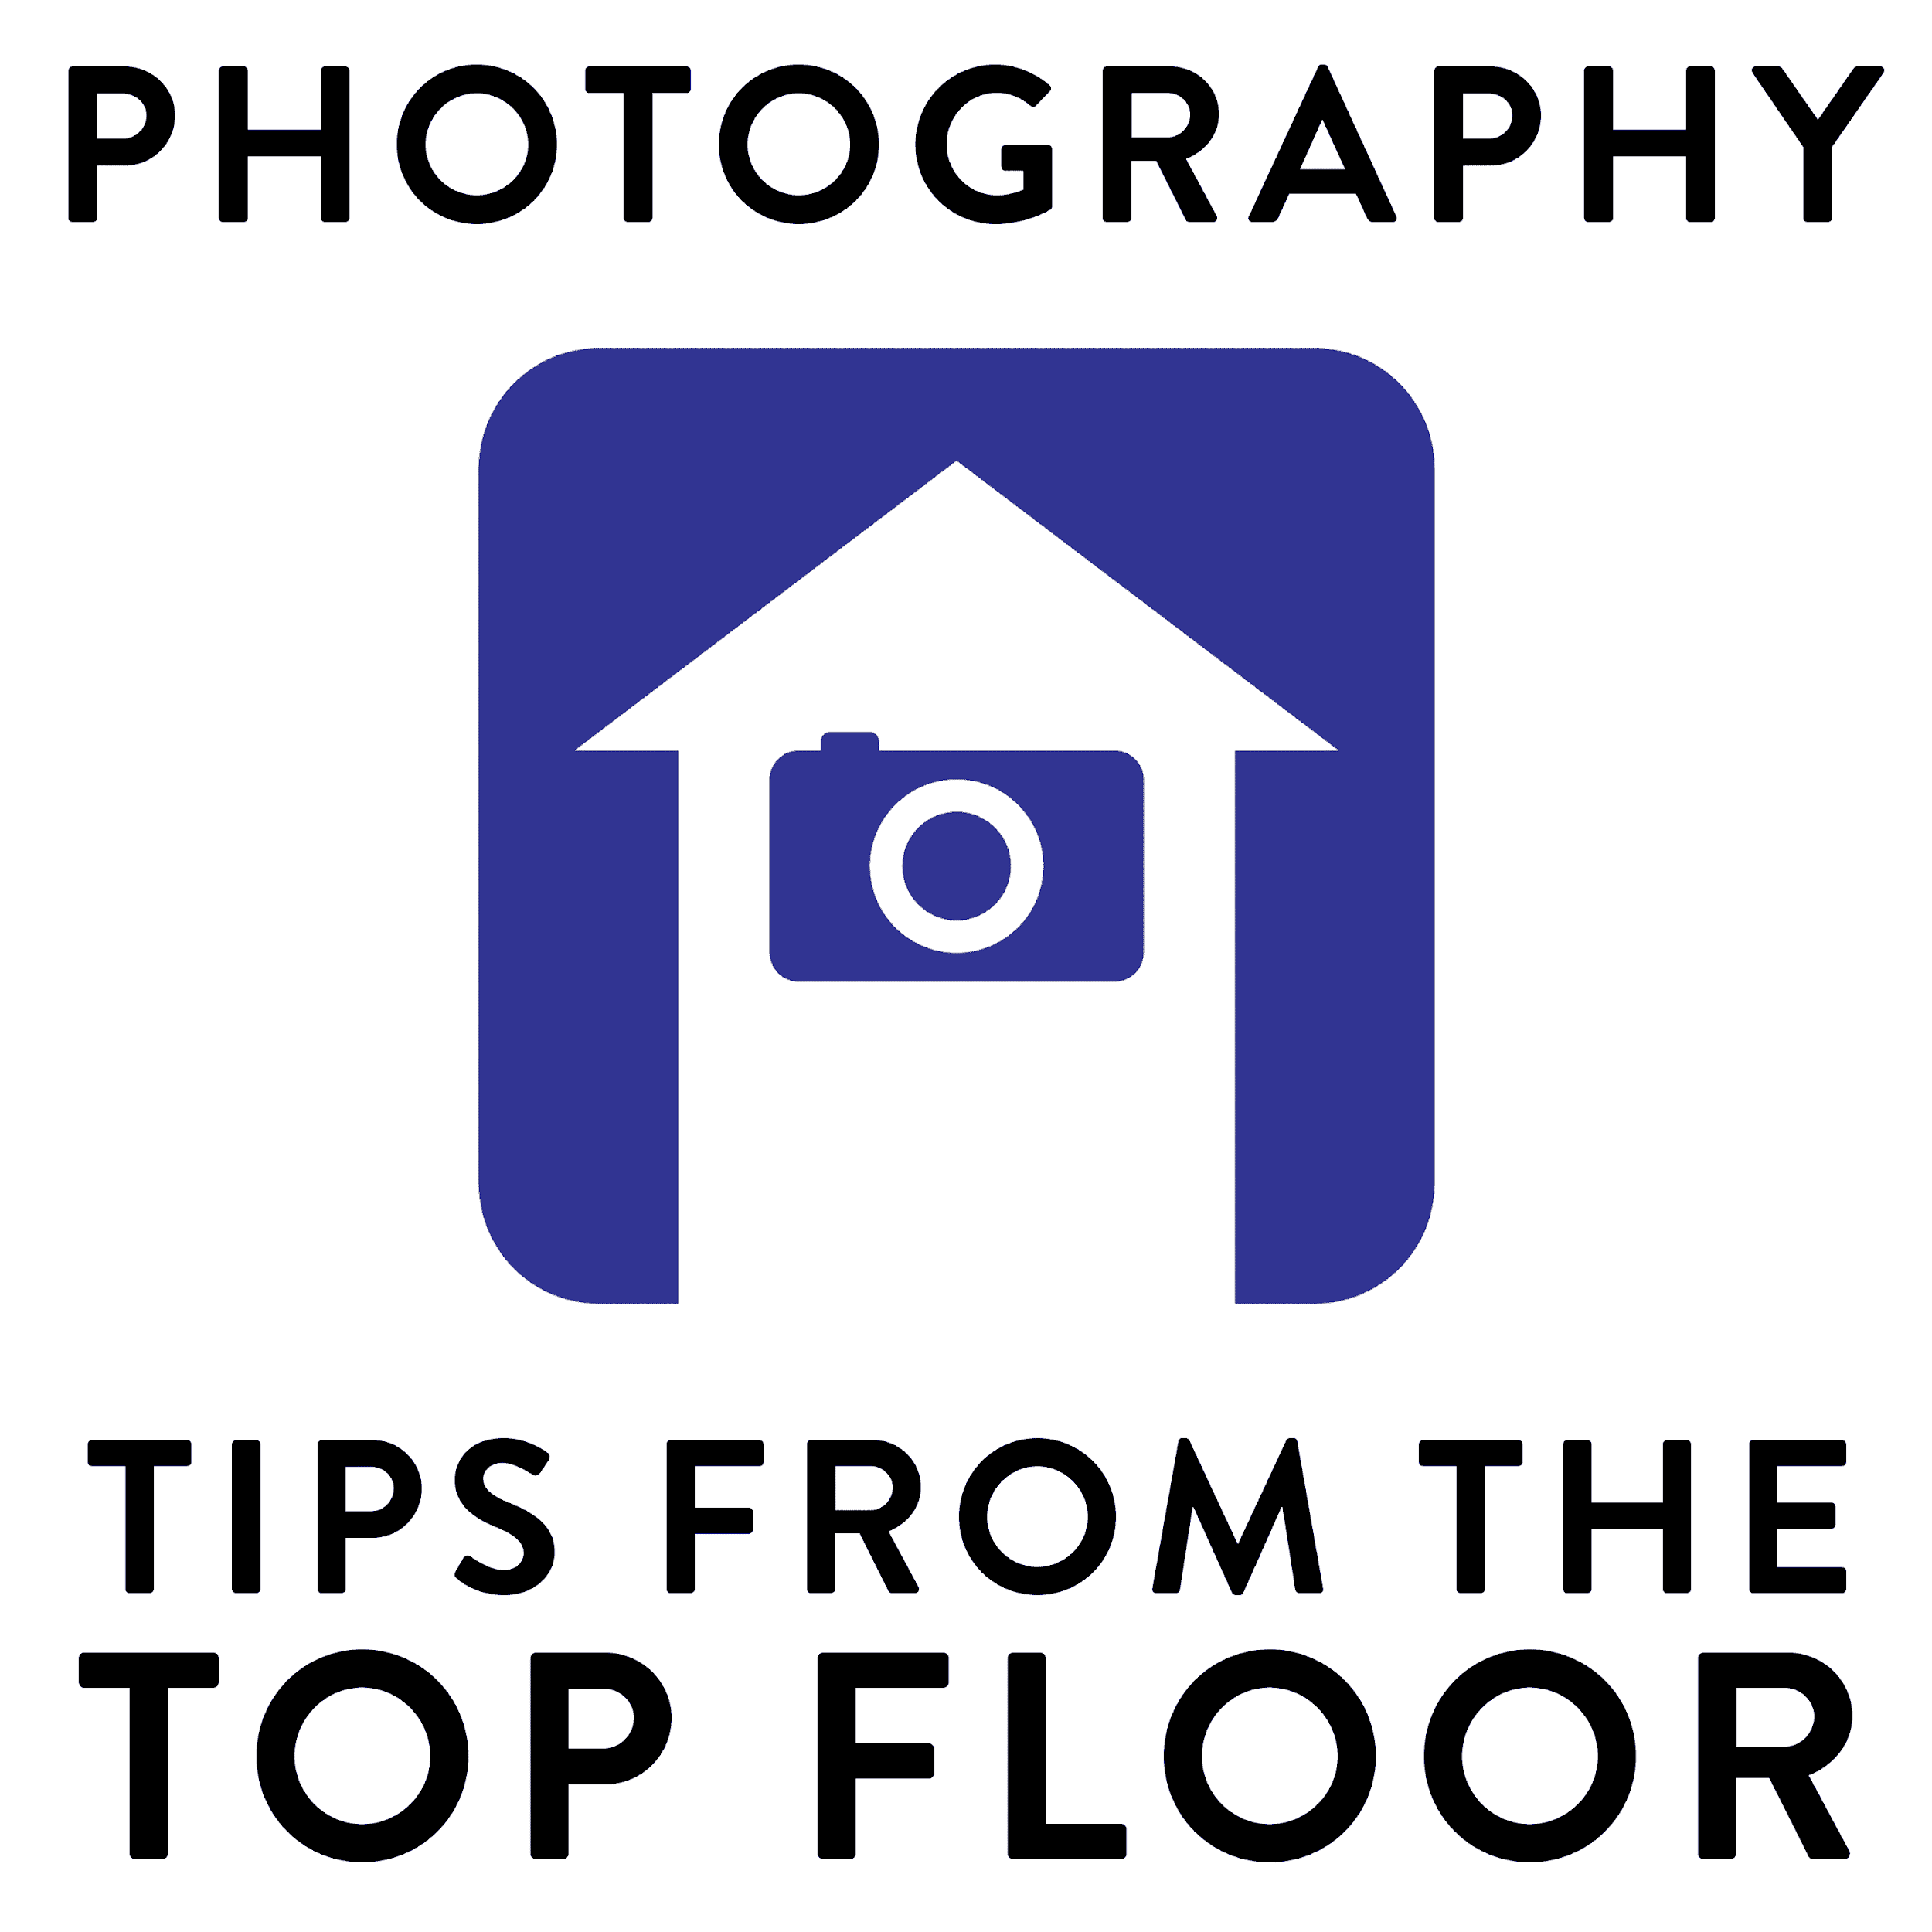 Photography Tips from the Top Floor Podcast Logo